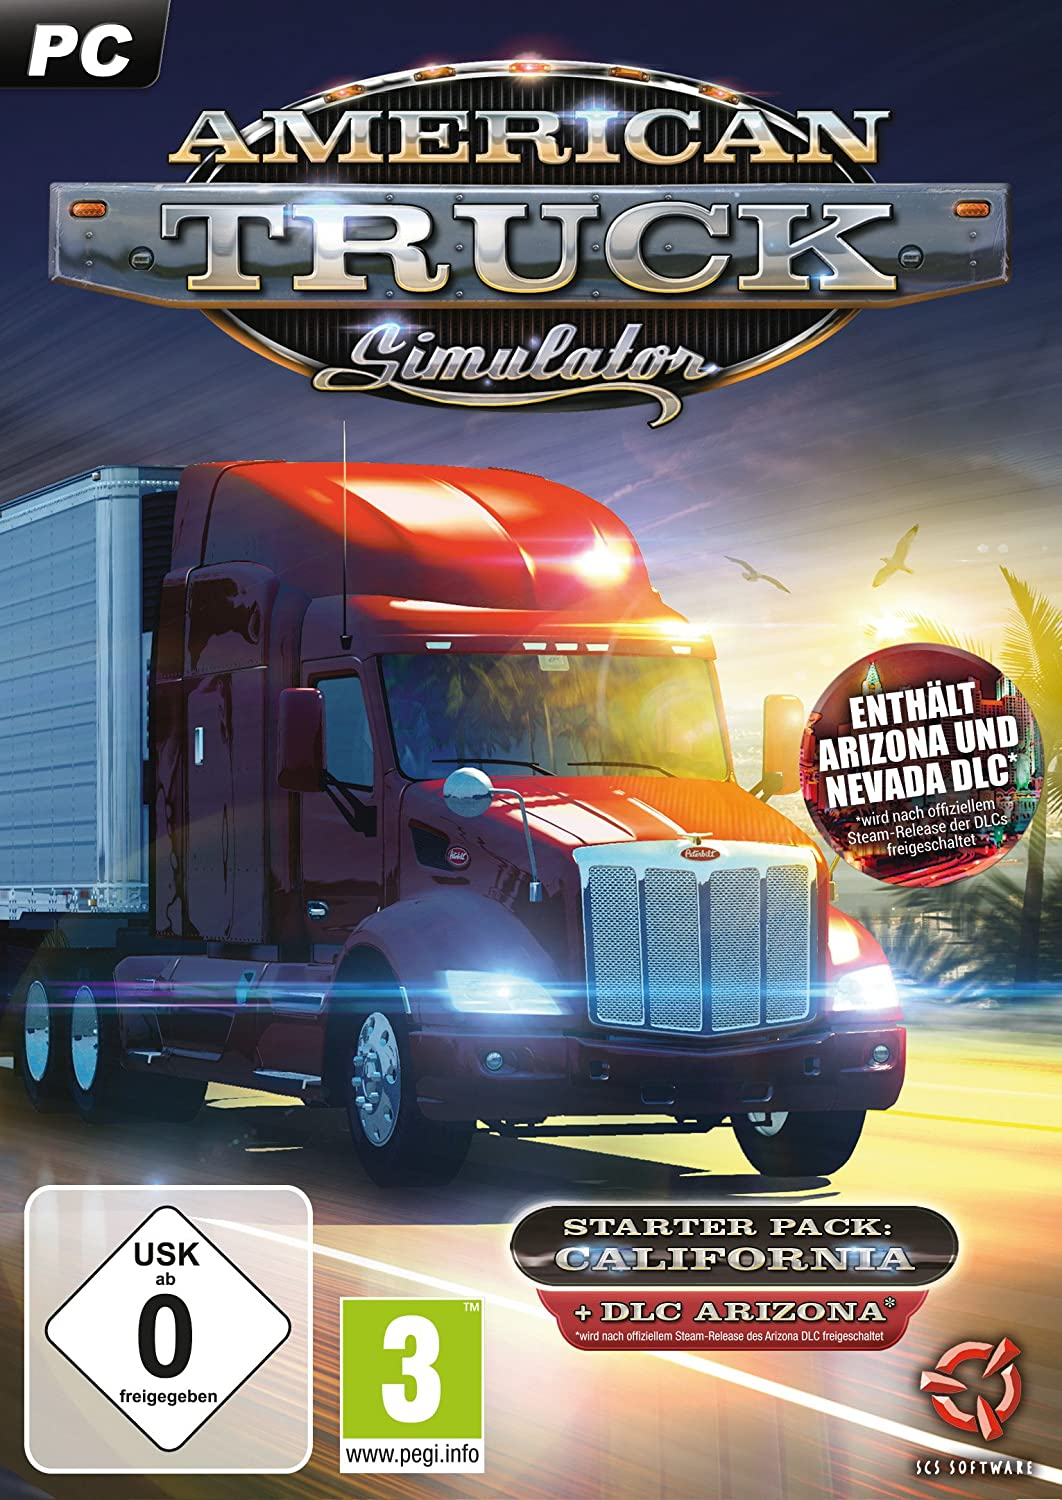 American Truck Simulator: PC: Amazon.de: Games